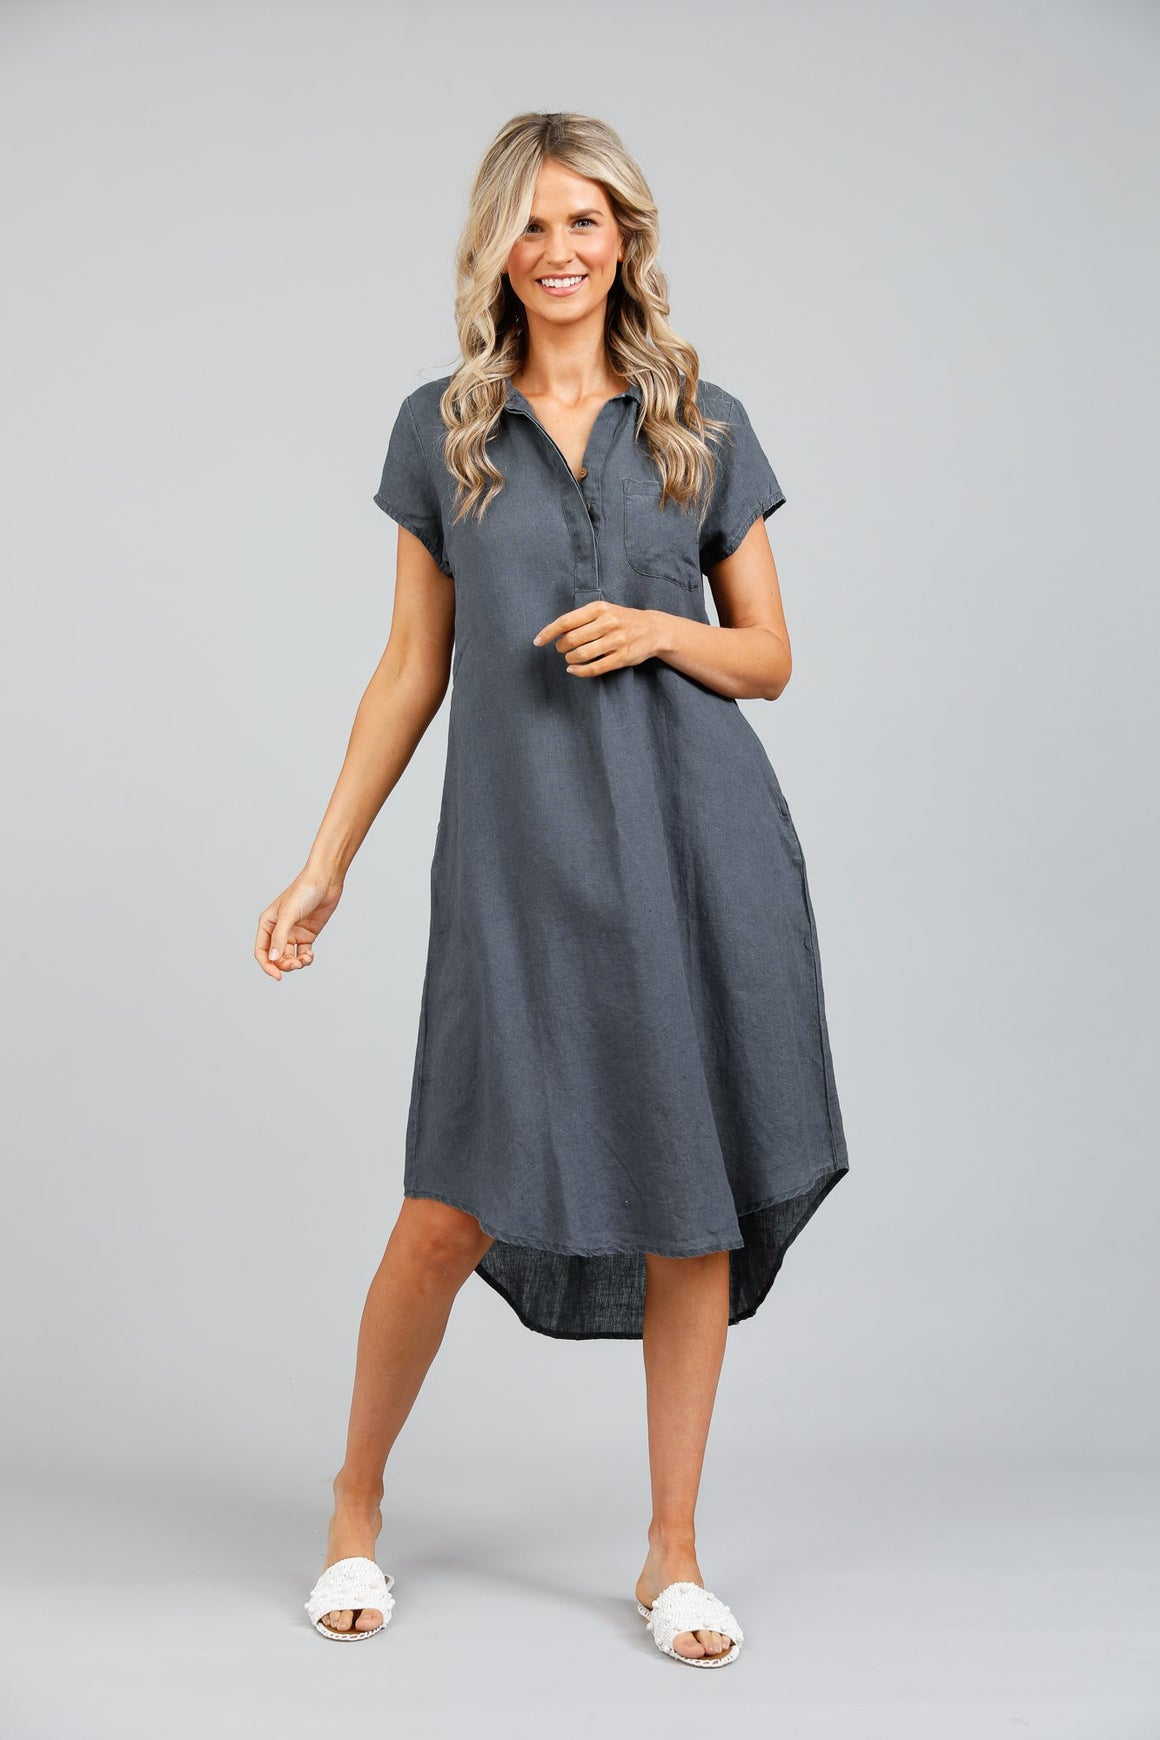 Holiday Ahoy Tunic Dress - Charcoal Grey